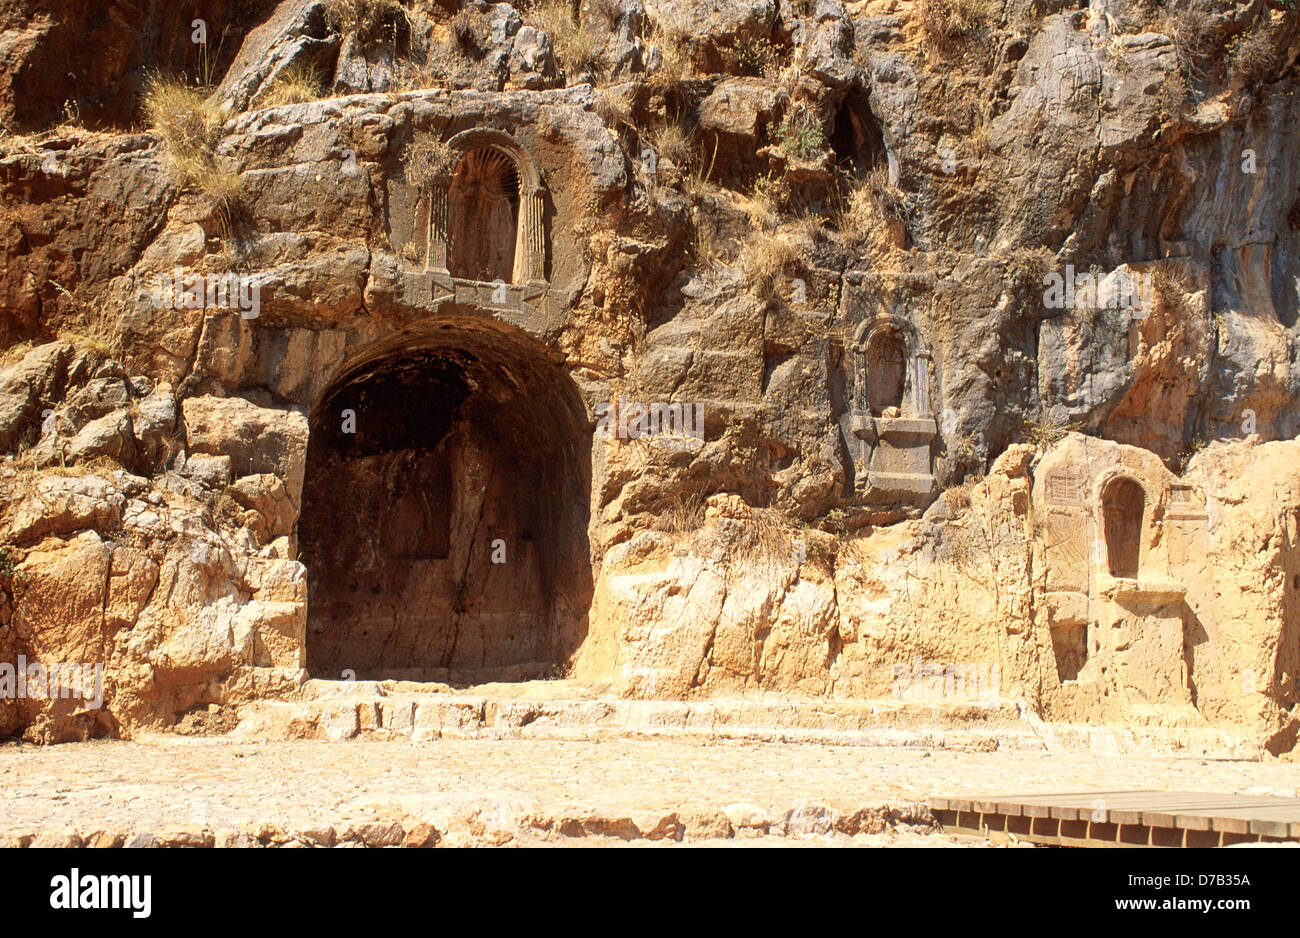 Banias Archaeology in the golan - Stock Image